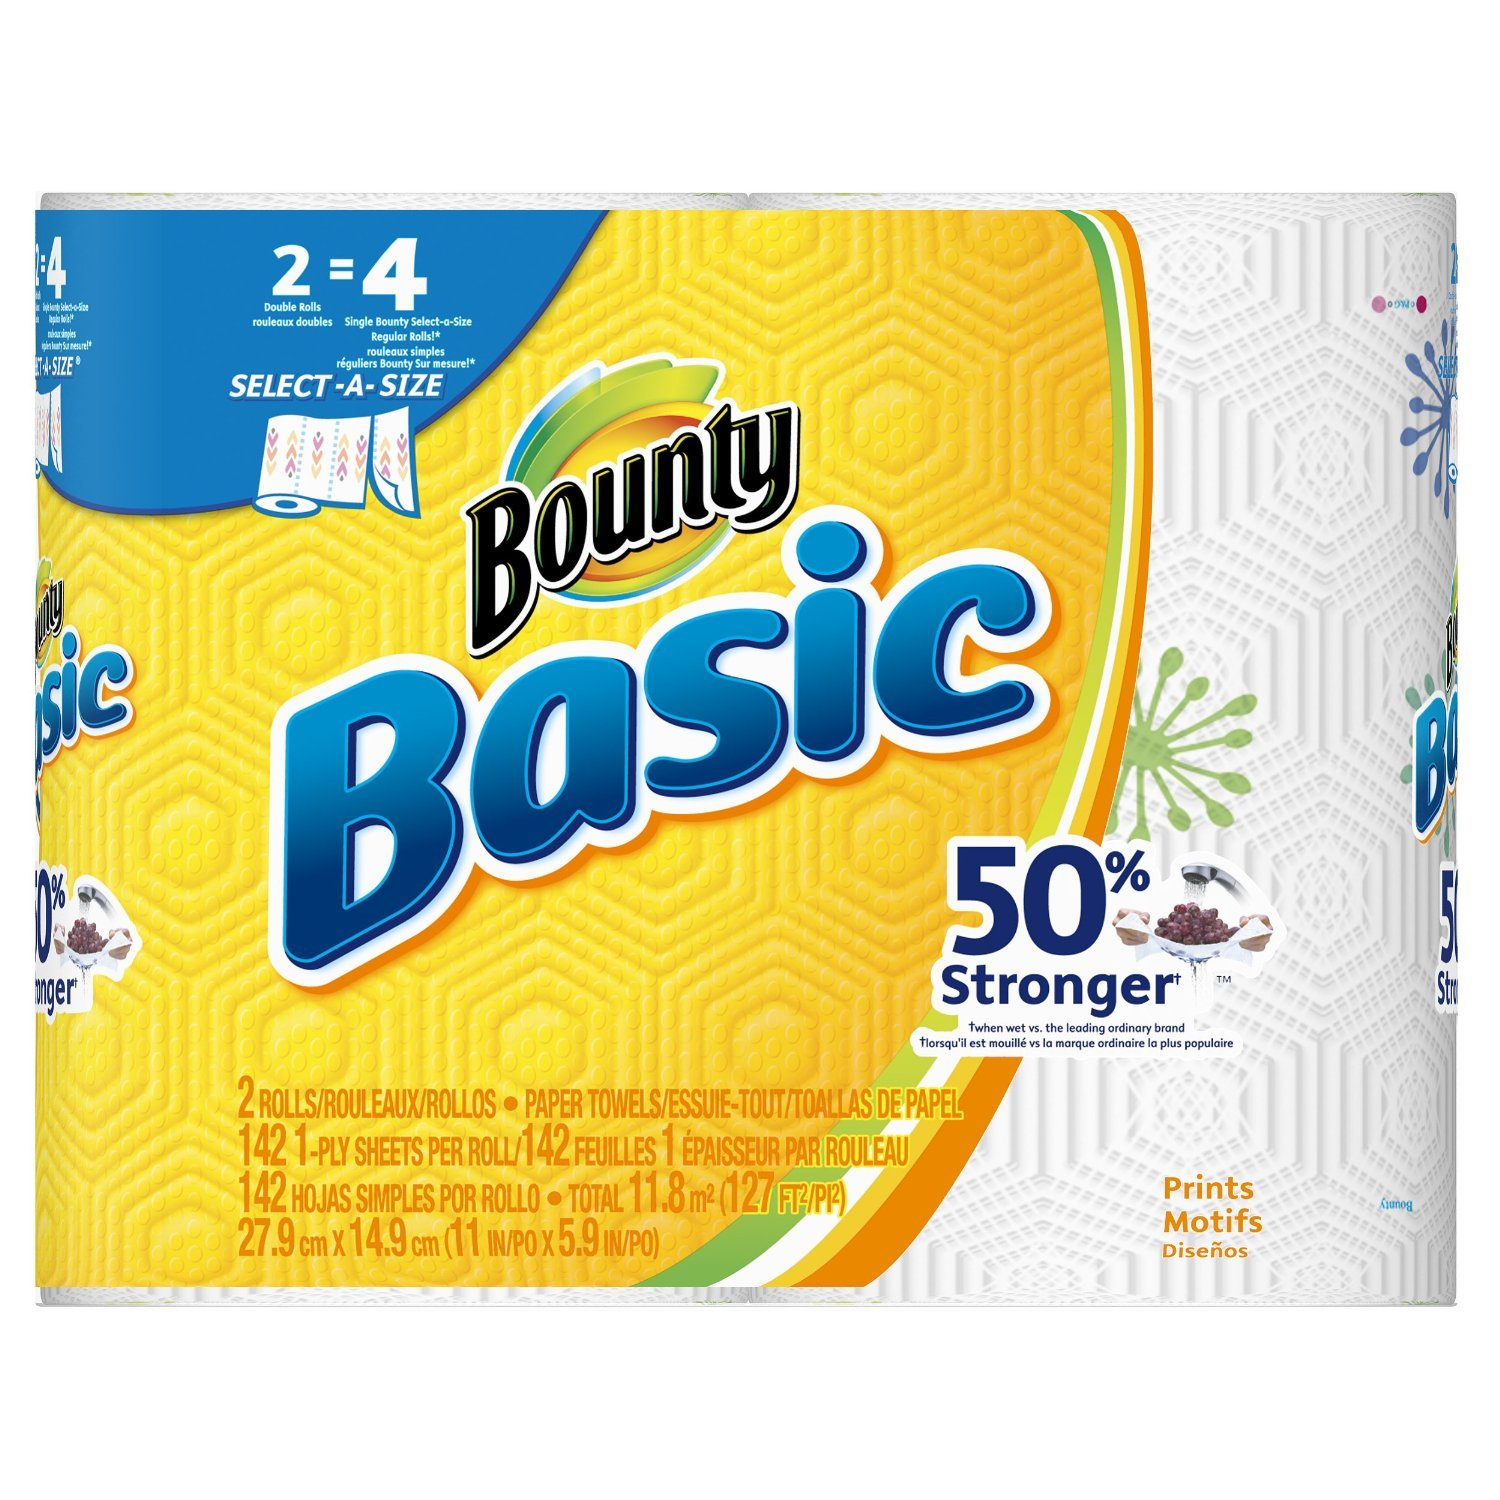 Amazon.com : Bounty Basic Double Roll Select-a-Size Paper Towels, Prints, 2 Count (Pack of 12) : Beauty